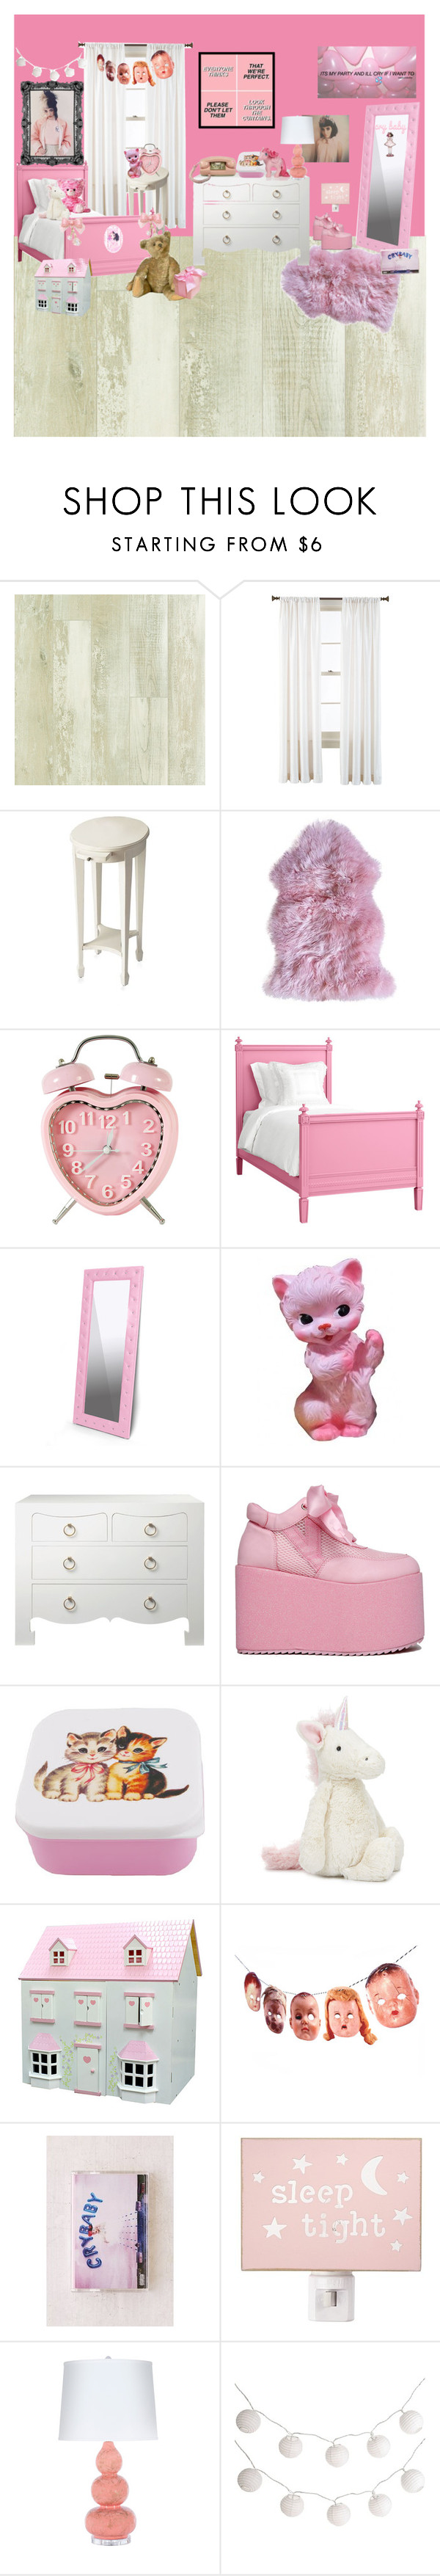 """""""Melanie Fan Room"""" by adventuretimekitty ❤ liked on Polyvore featuring interior, interiors, interior design, home, home decor, interior decorating, Royal Velvet, Butler Specialty Company, Redford House and Baxton Studio"""